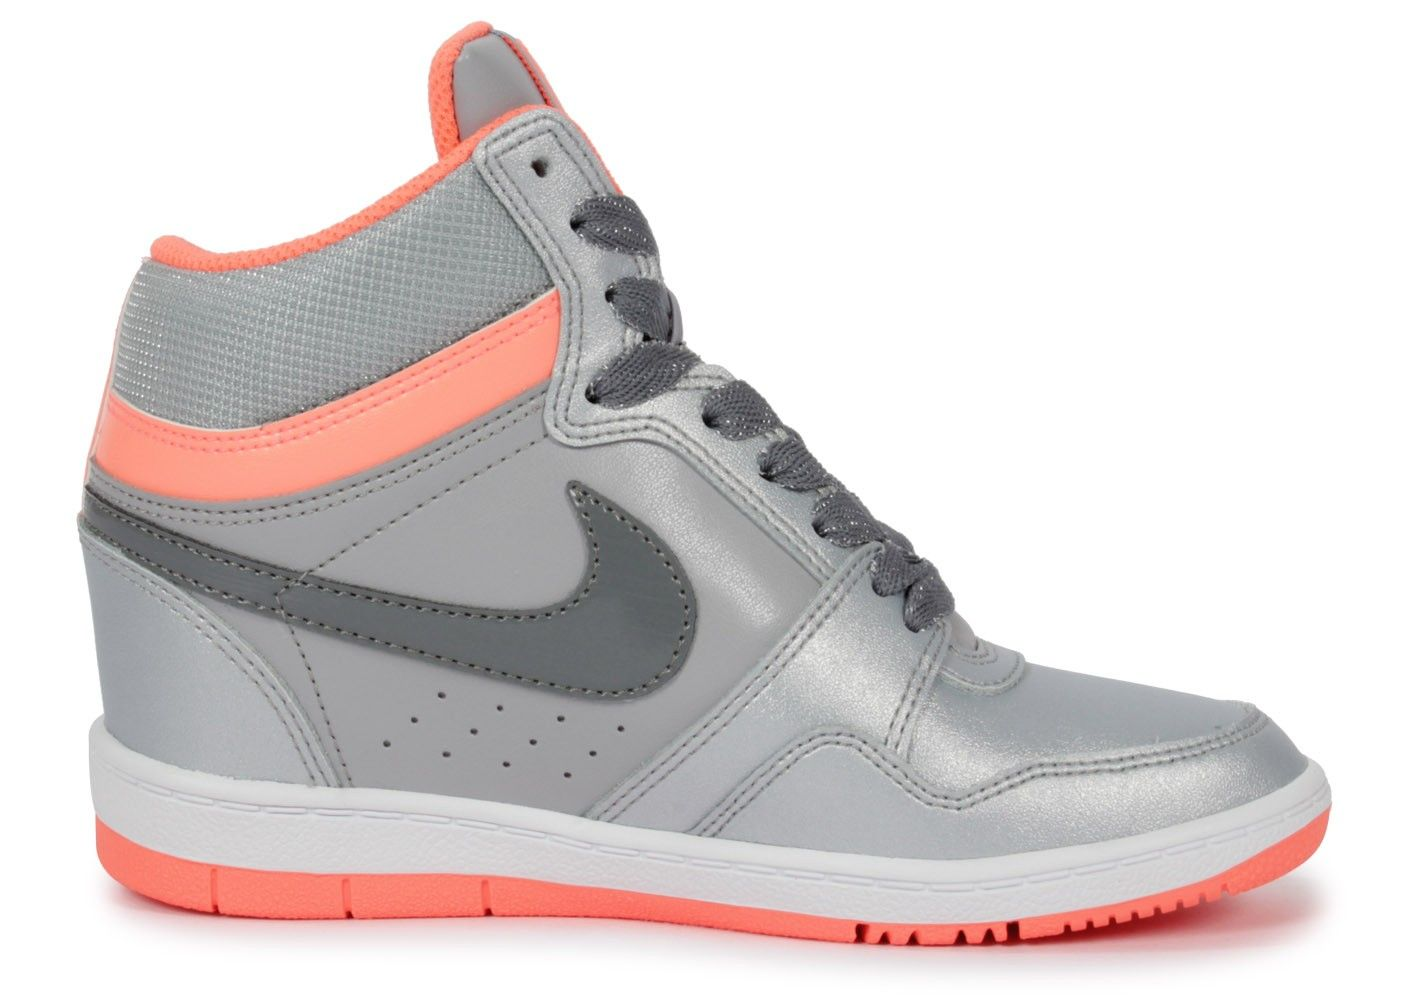 8054-chaussures-nike-force-sky-grise-vue-interieure.jpg (1410×1000)